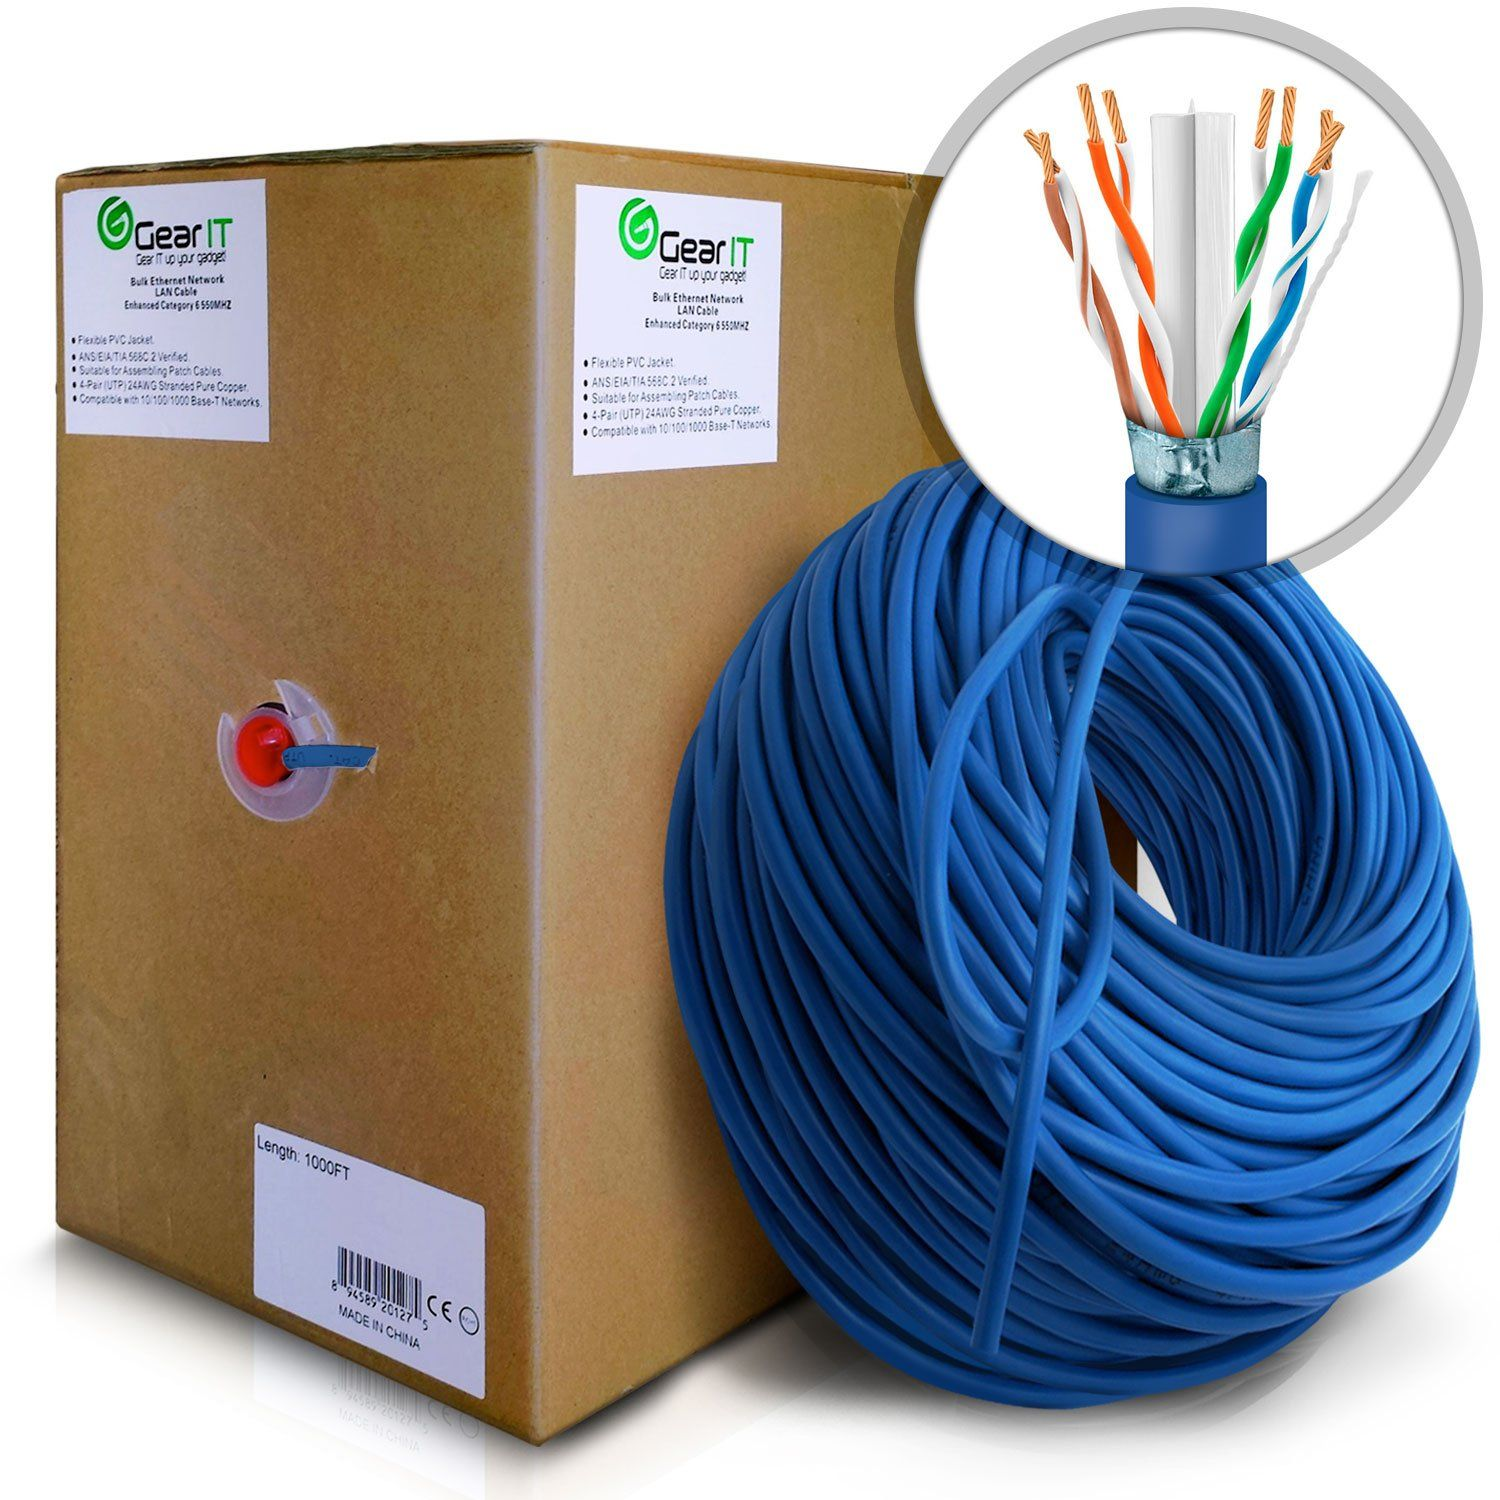 Gearit 1000 Feet Bulk Cat6 Stp Ethernet Cable Stranded Twisted Pair Wiring Cat 6 Shielded 550mhz 24awg Full Copper Wire Pull Box In Wall Rated Cm Blue